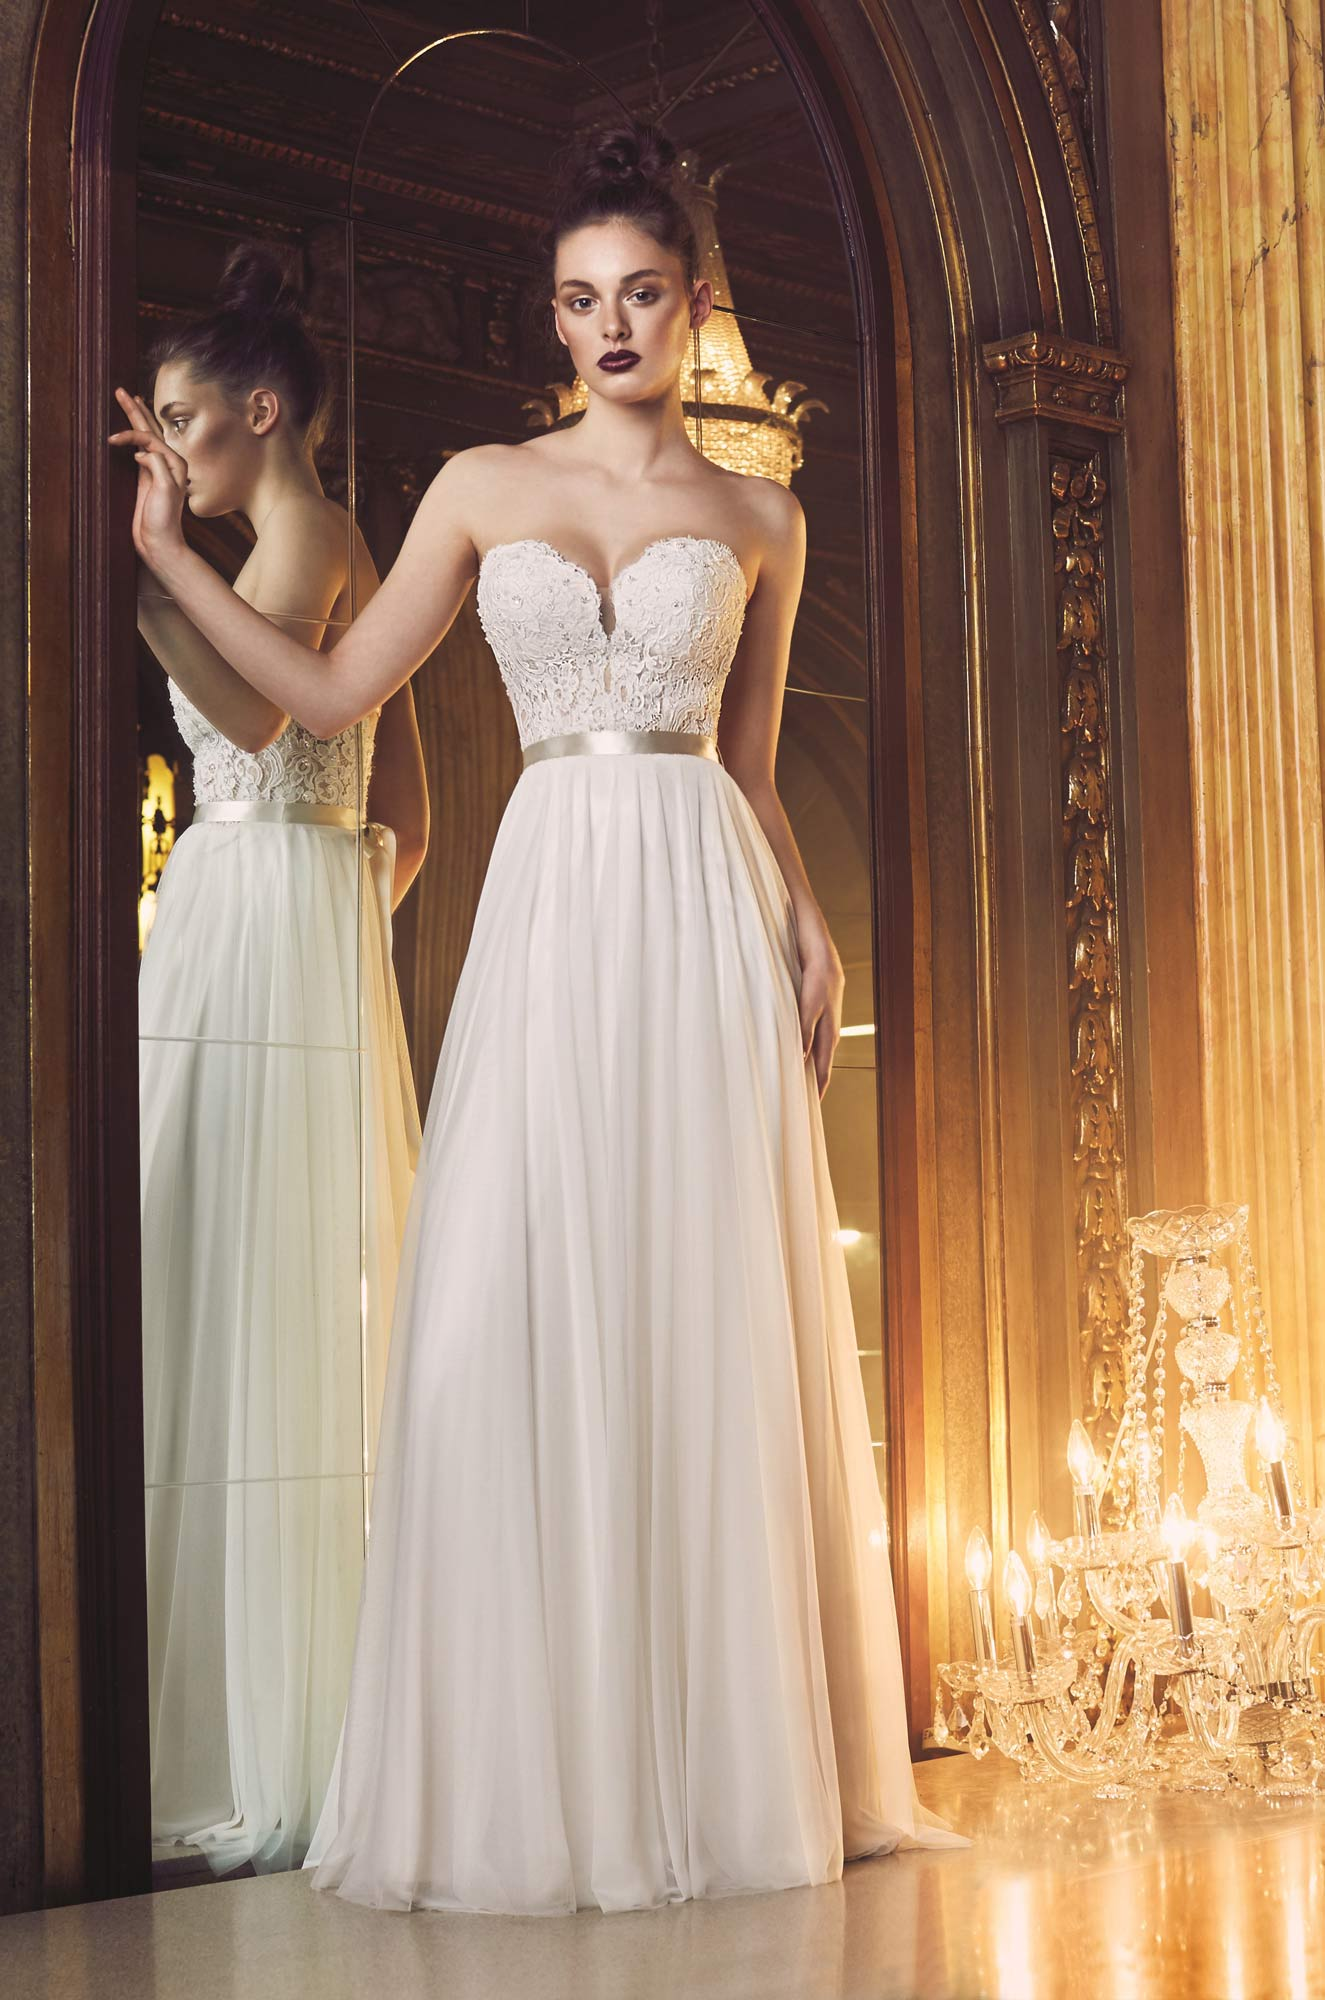 16b2d833dd7e0 Toronto Bridal Boutique featuring Wedding Dresses and Wedding Gowns